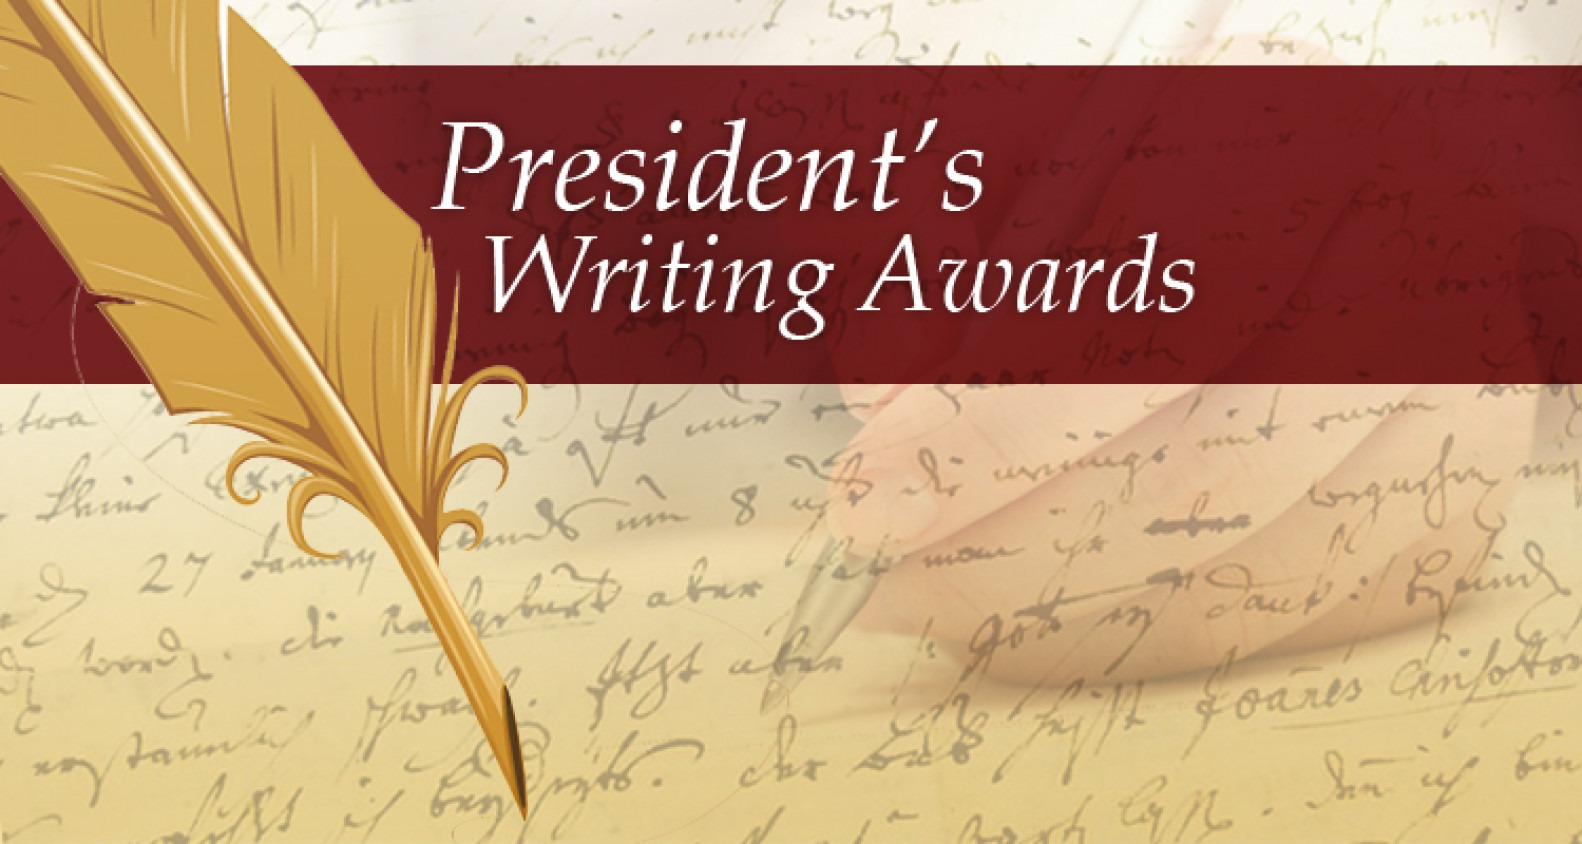 President's Writing Awards